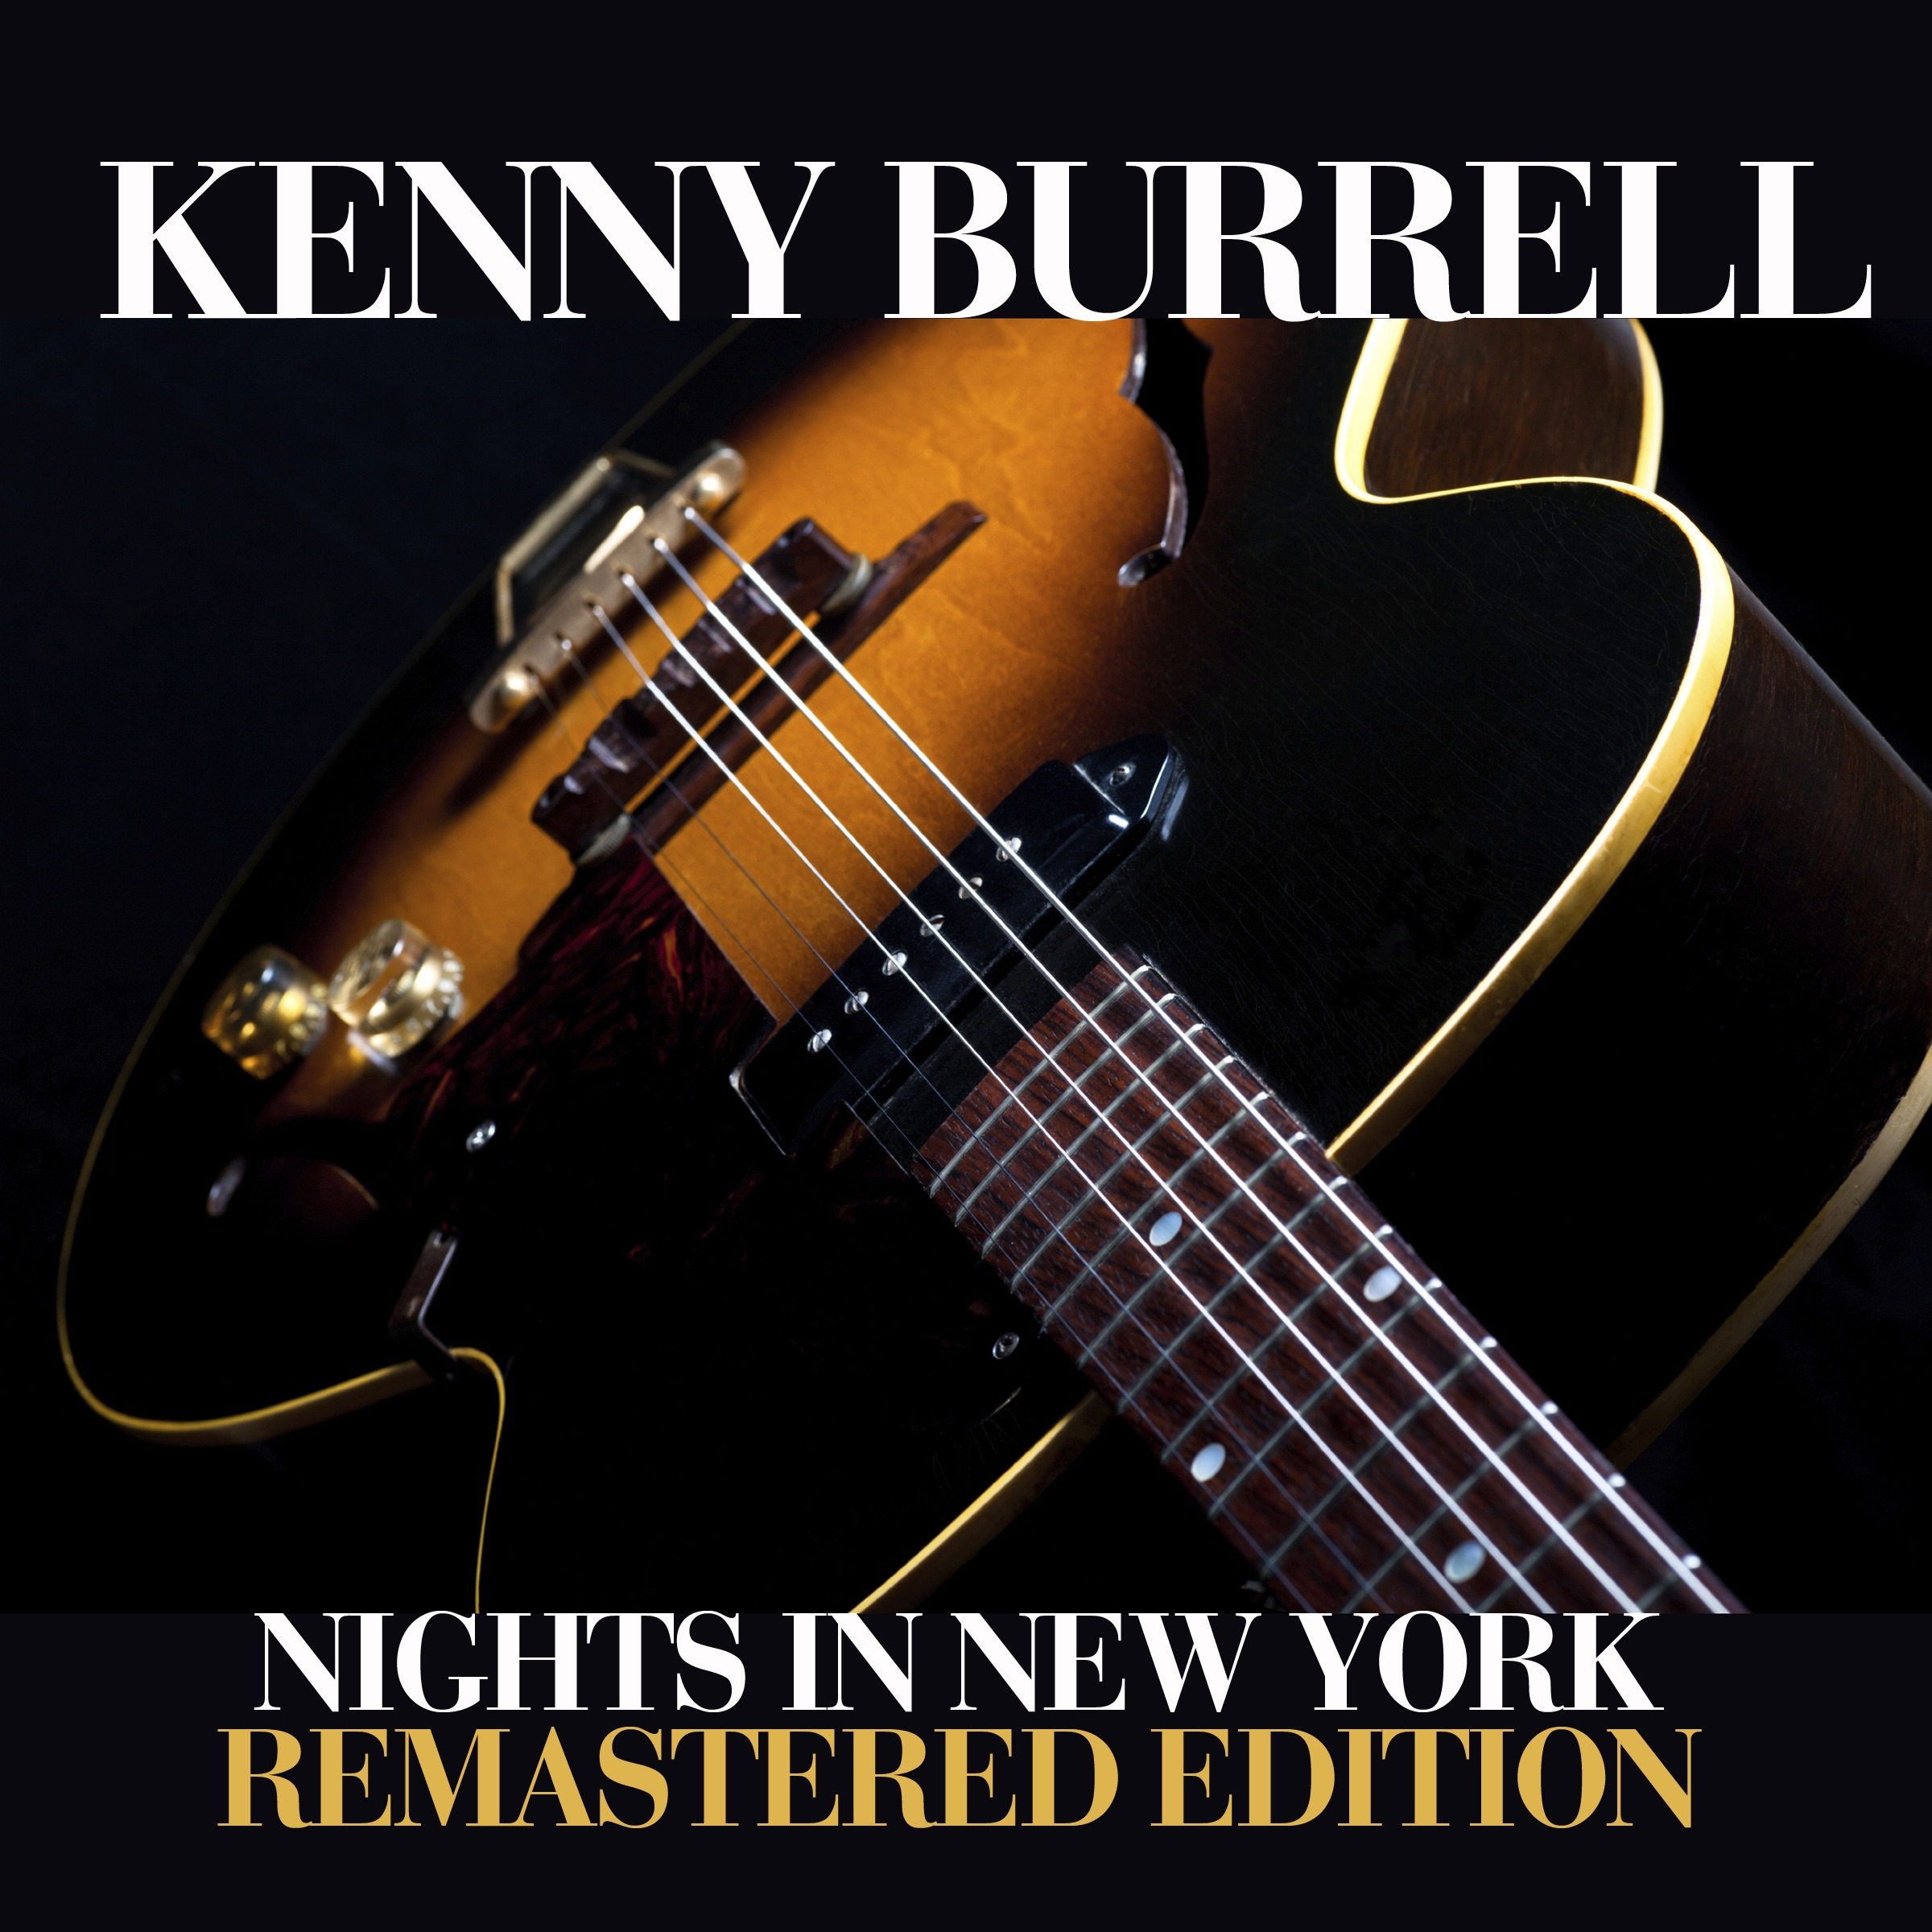 Nights In New York Remastered Edition